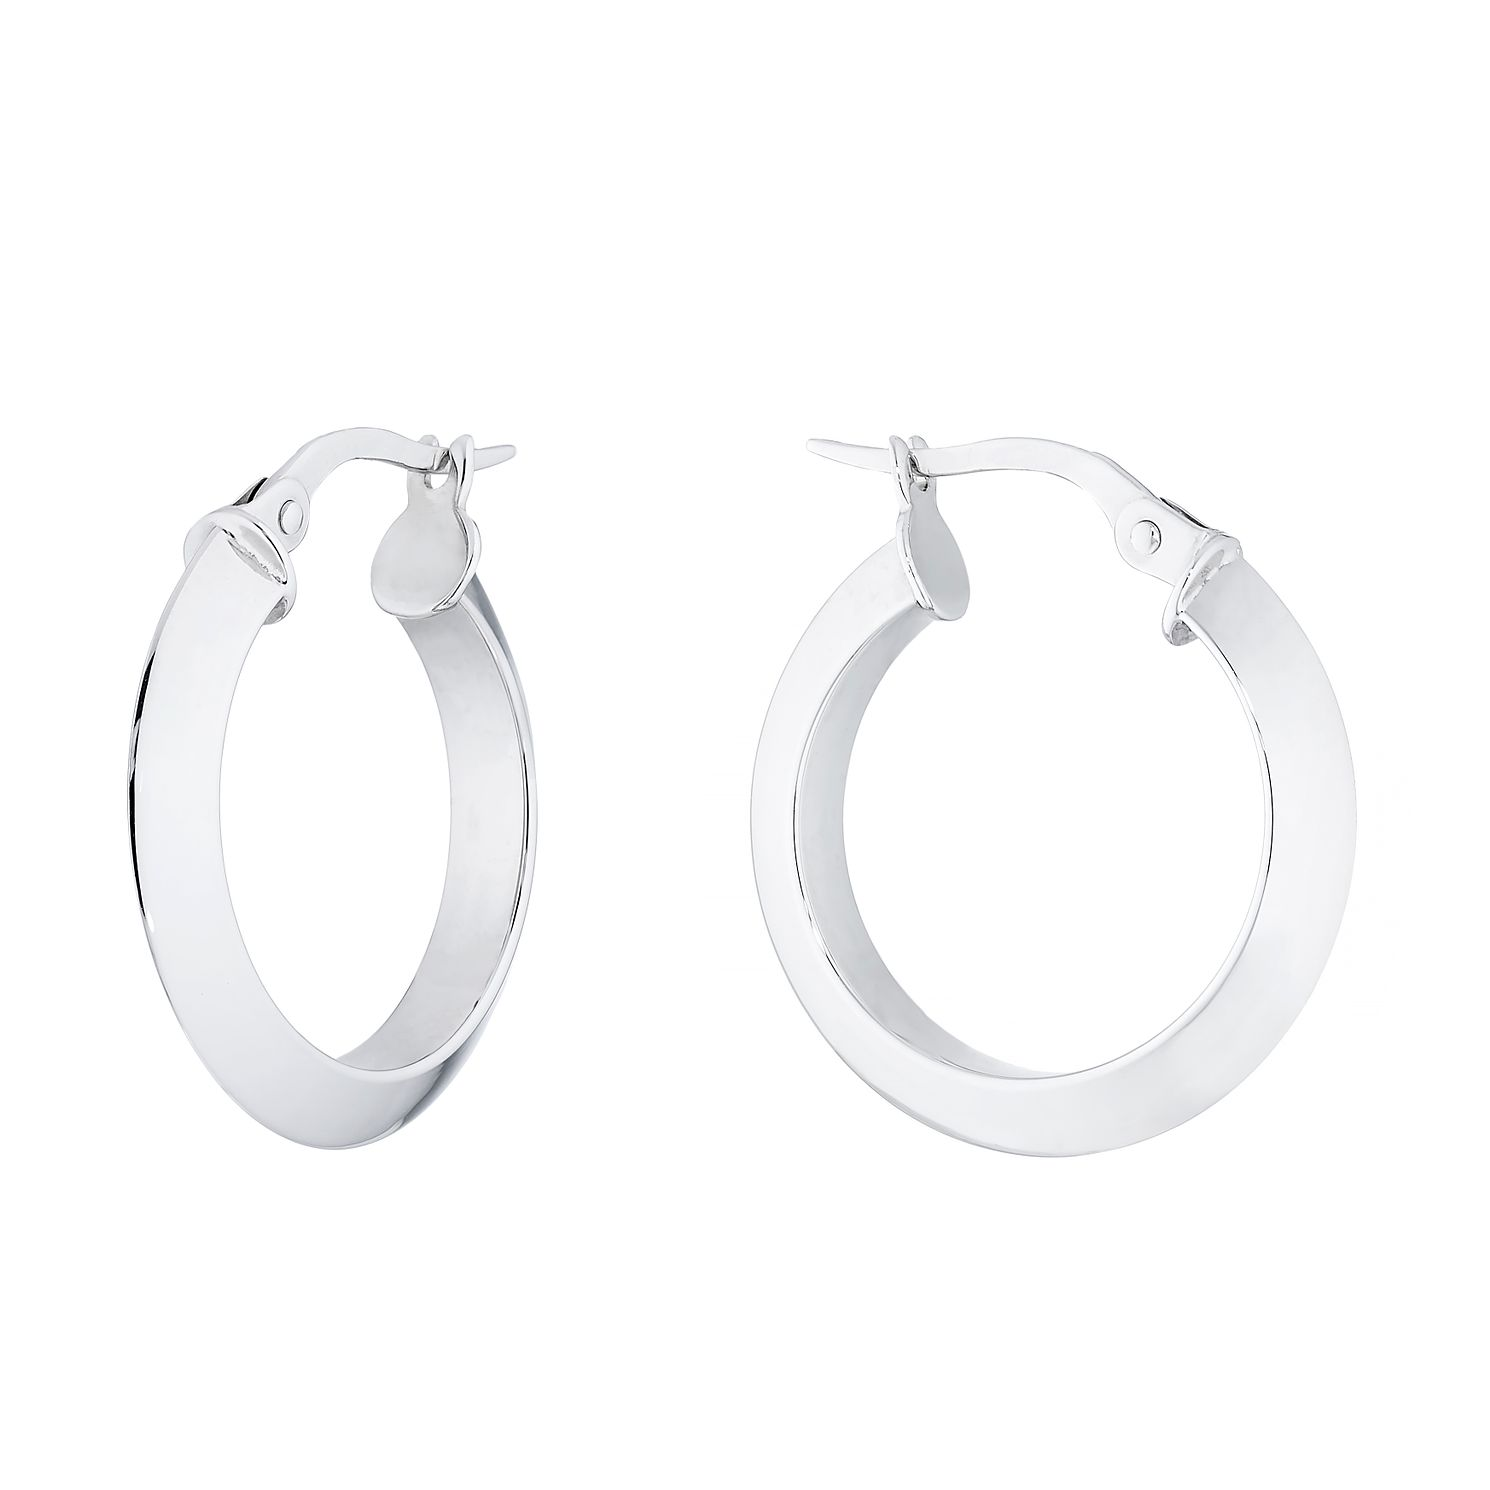 9ct White Gold Bevel Edge Hoop Earrings - Product number 4670086